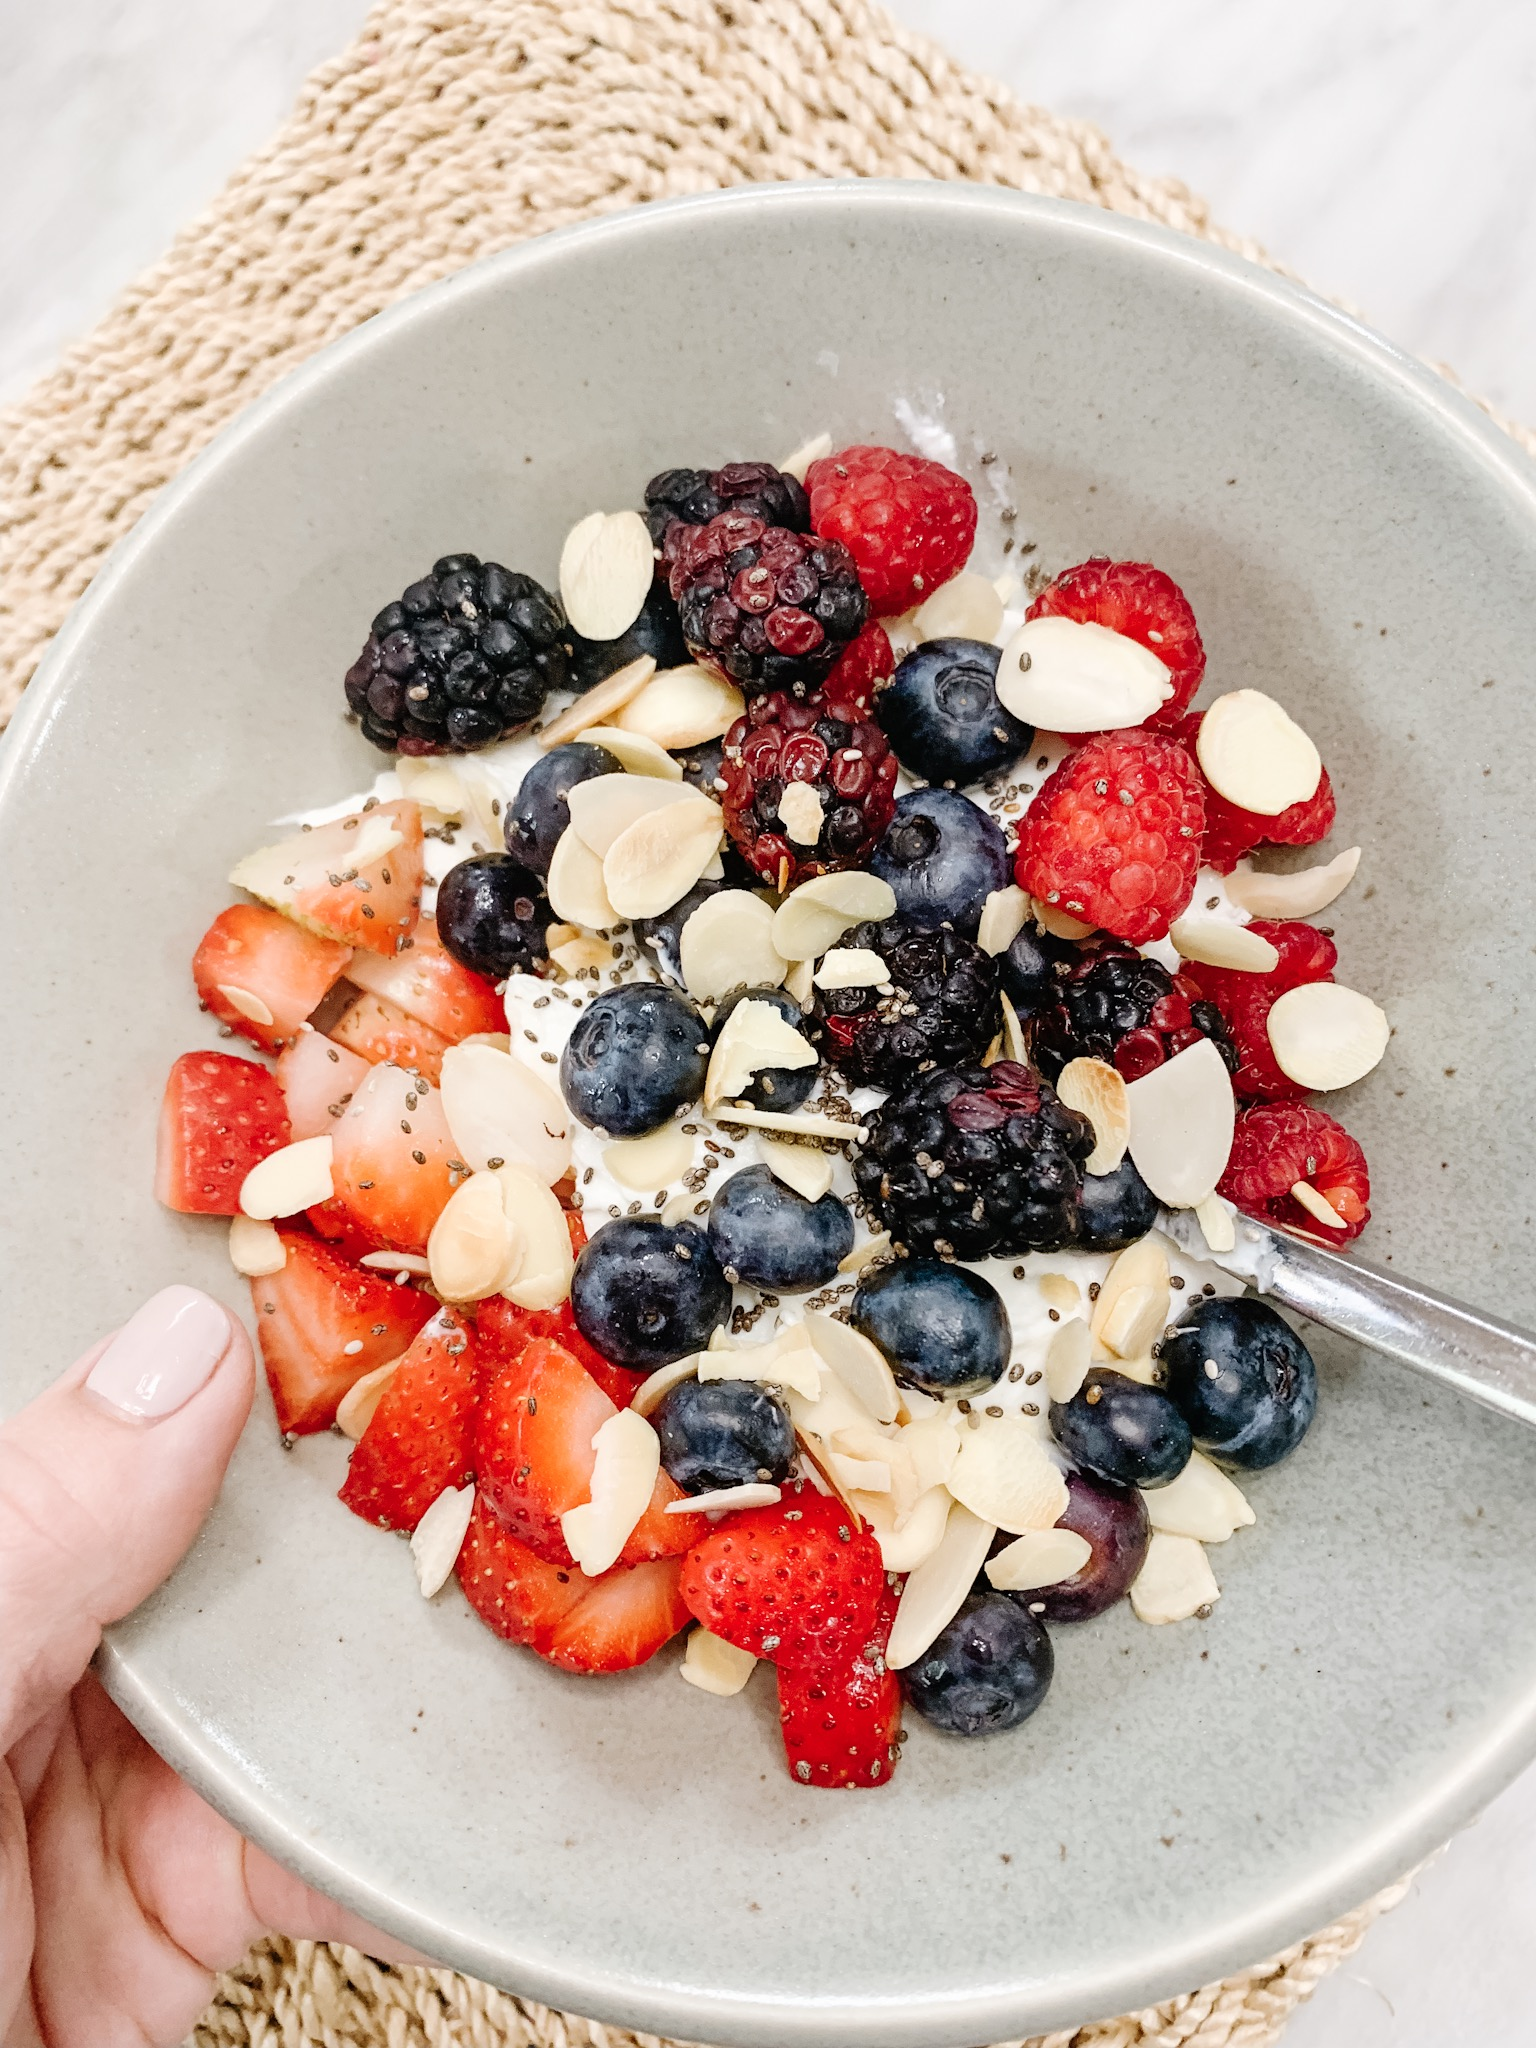 What I Eat in a Day - Yogurt and berries